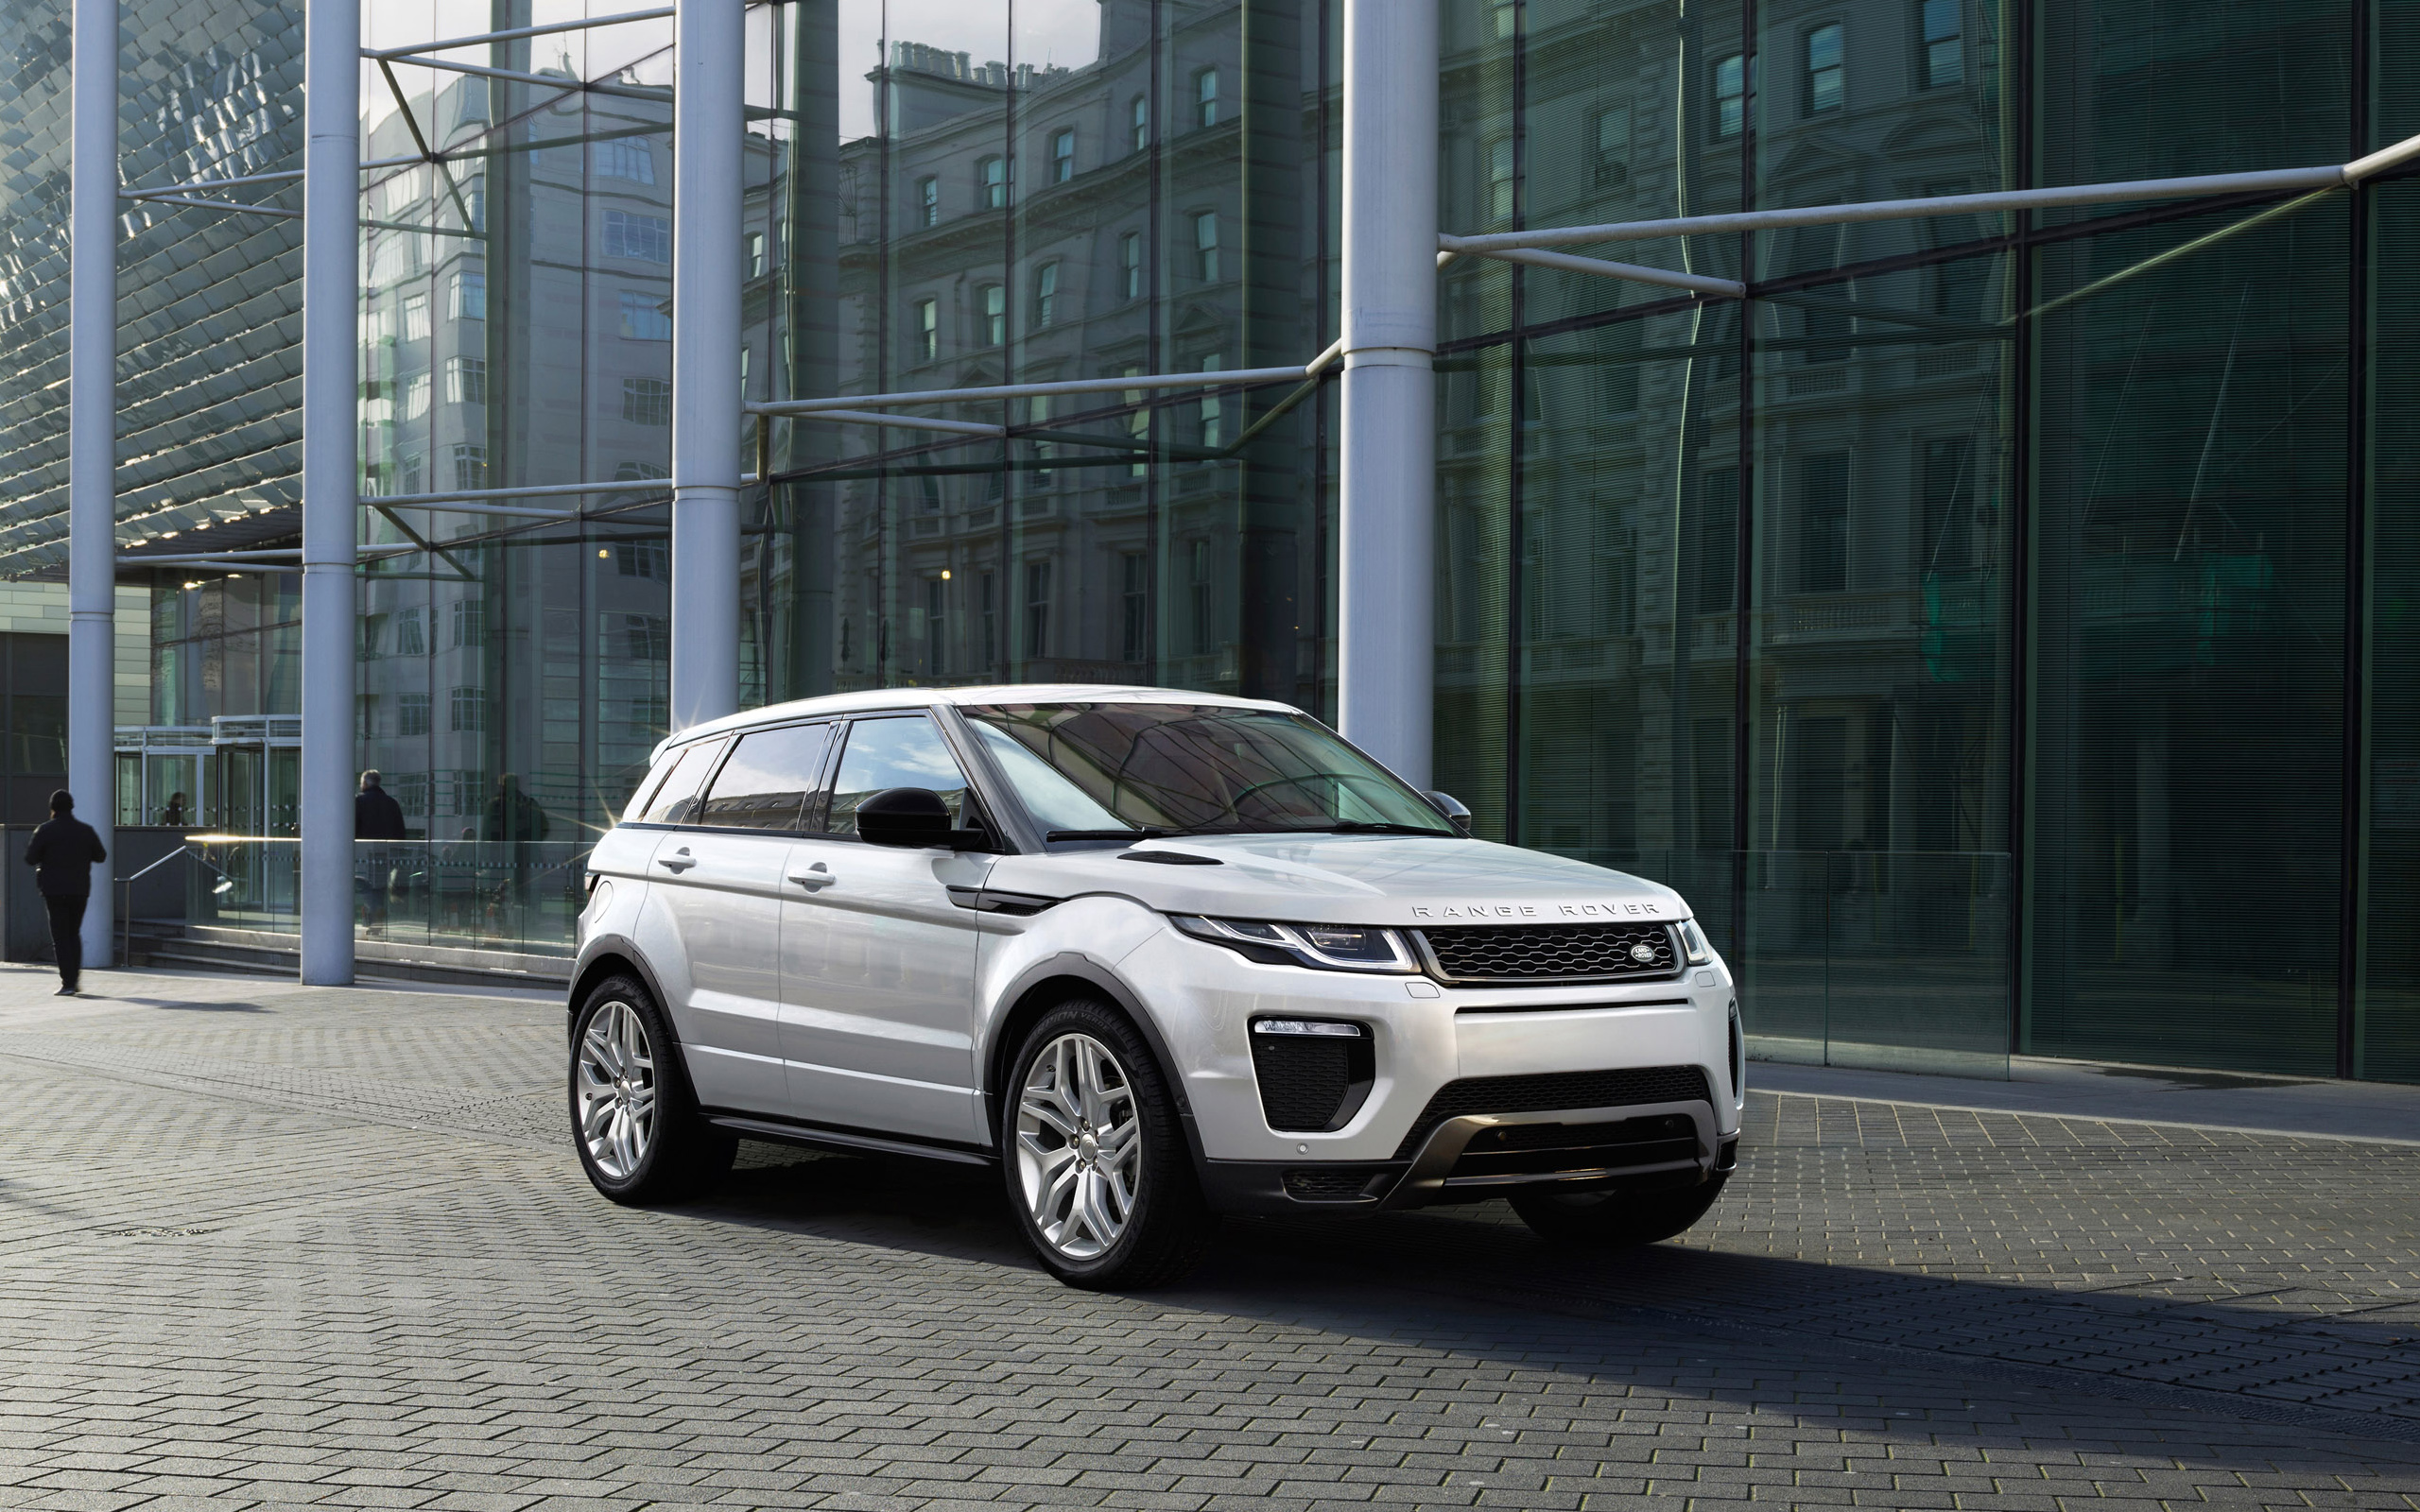 2016 Range Rover Evoque Wallpaper Hd Car Wallpapers Id